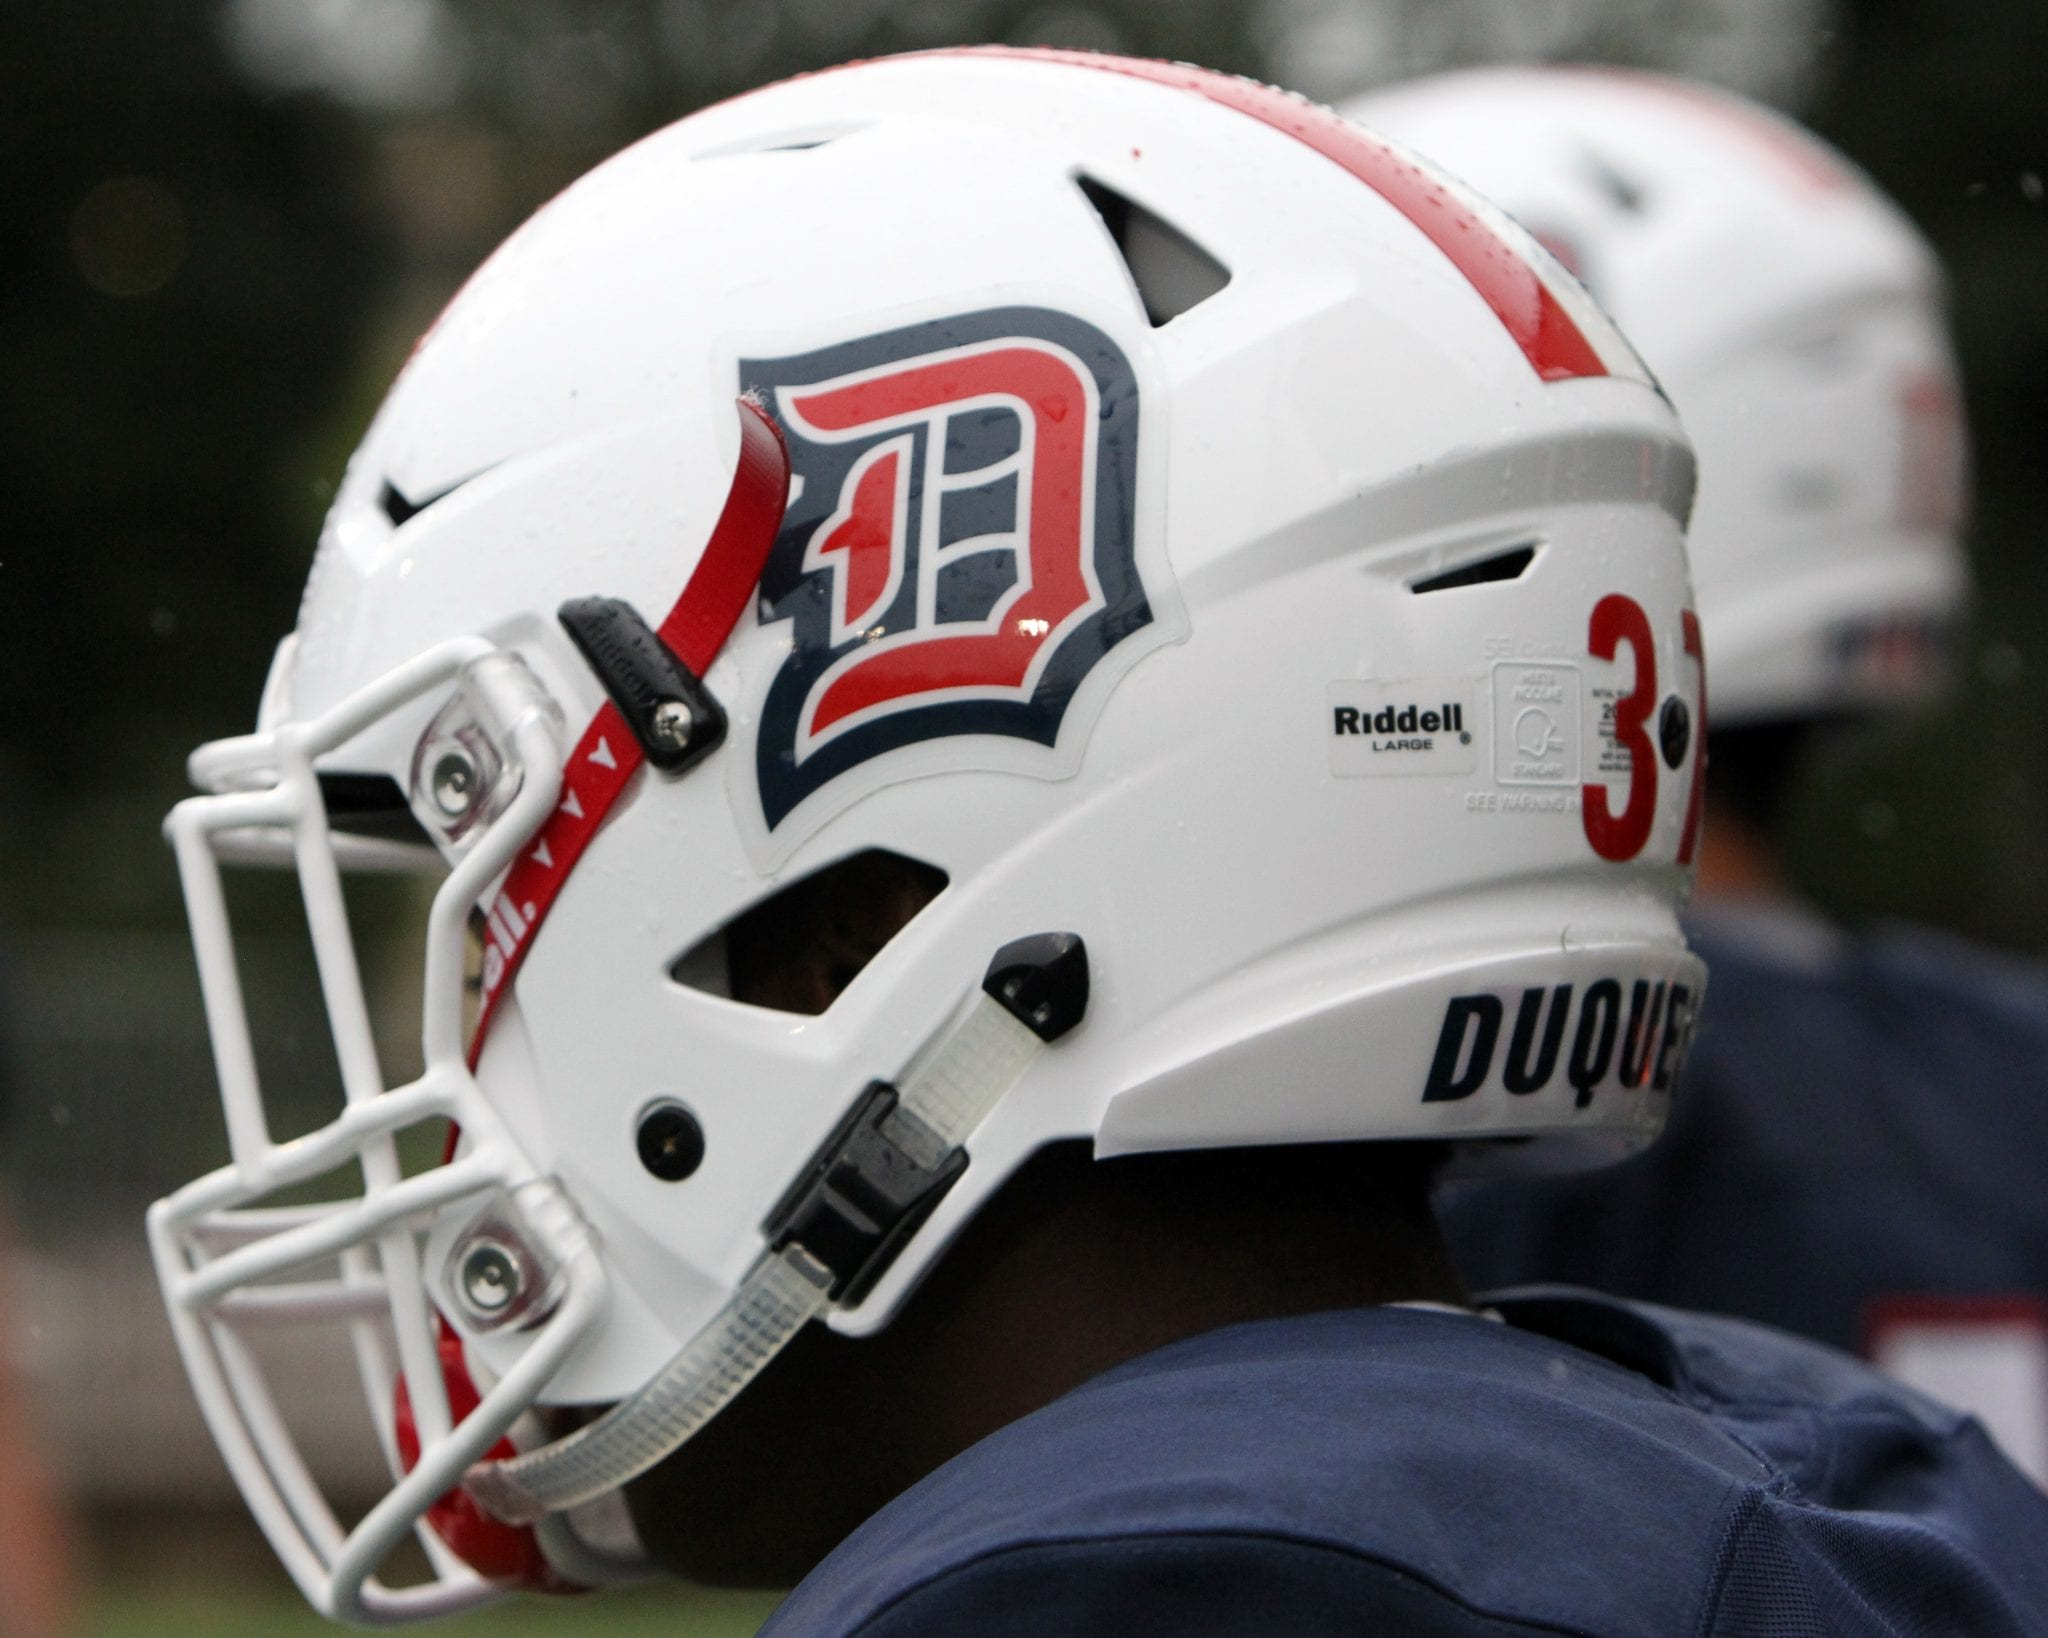 Youngstown State Football Schedule 2020 Duquesne Football Adds Youngstown State Game to Their 2022